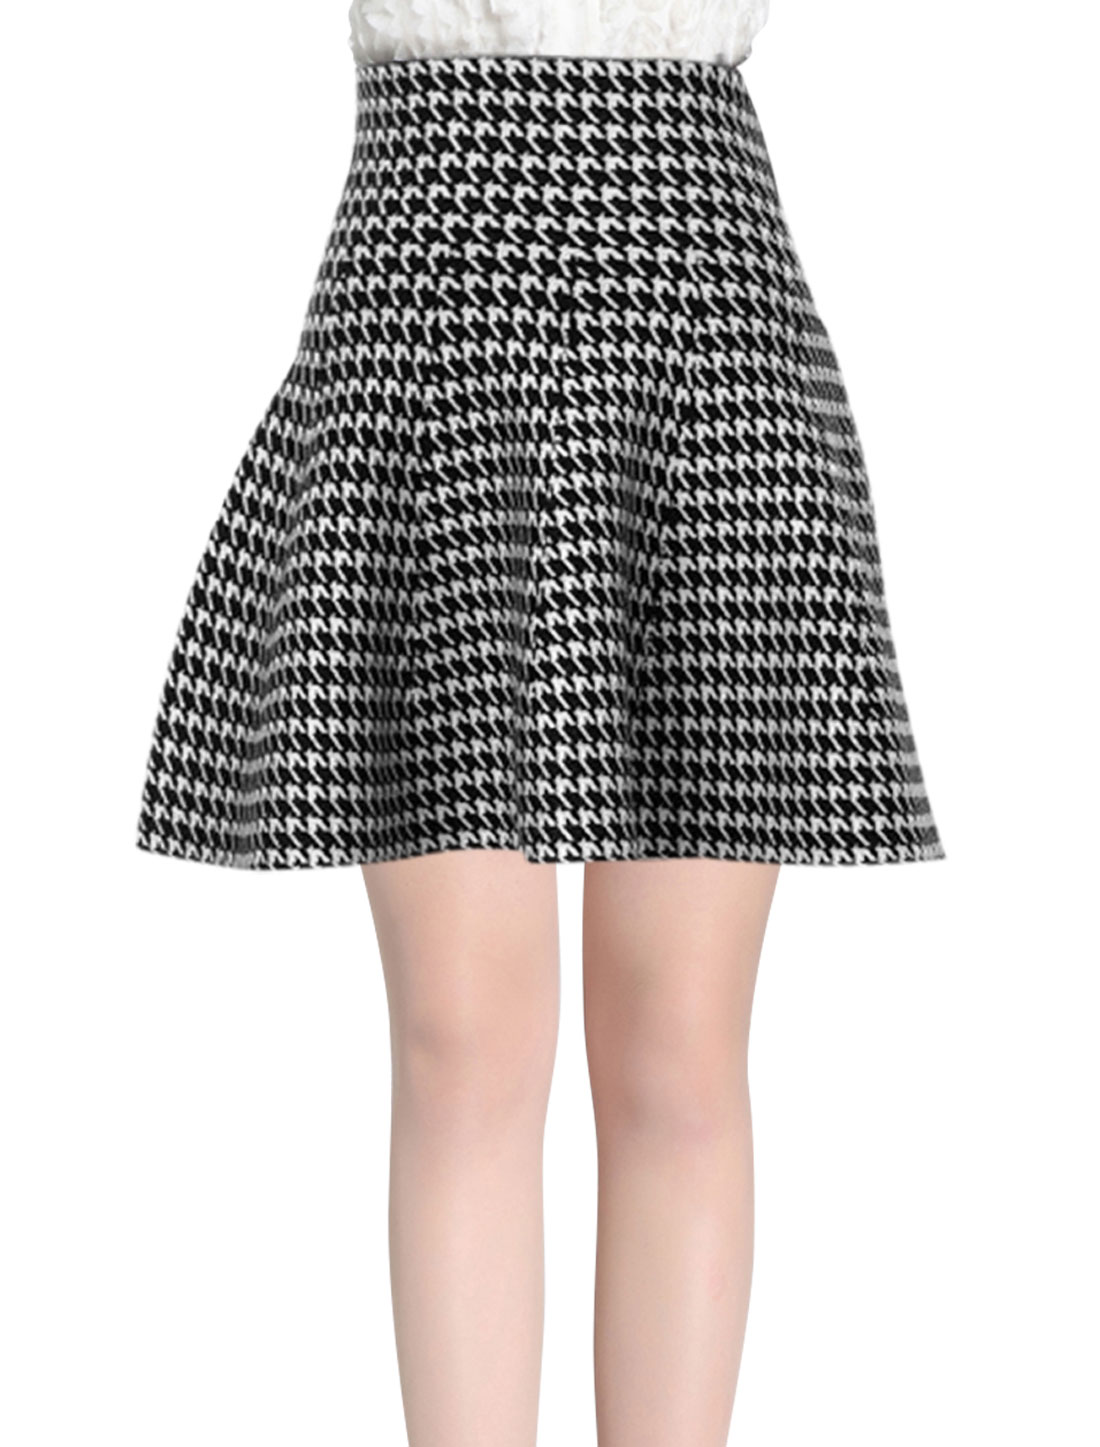 Women Houndstooth Pattern High Waist Knit Full Skirt Black White XS